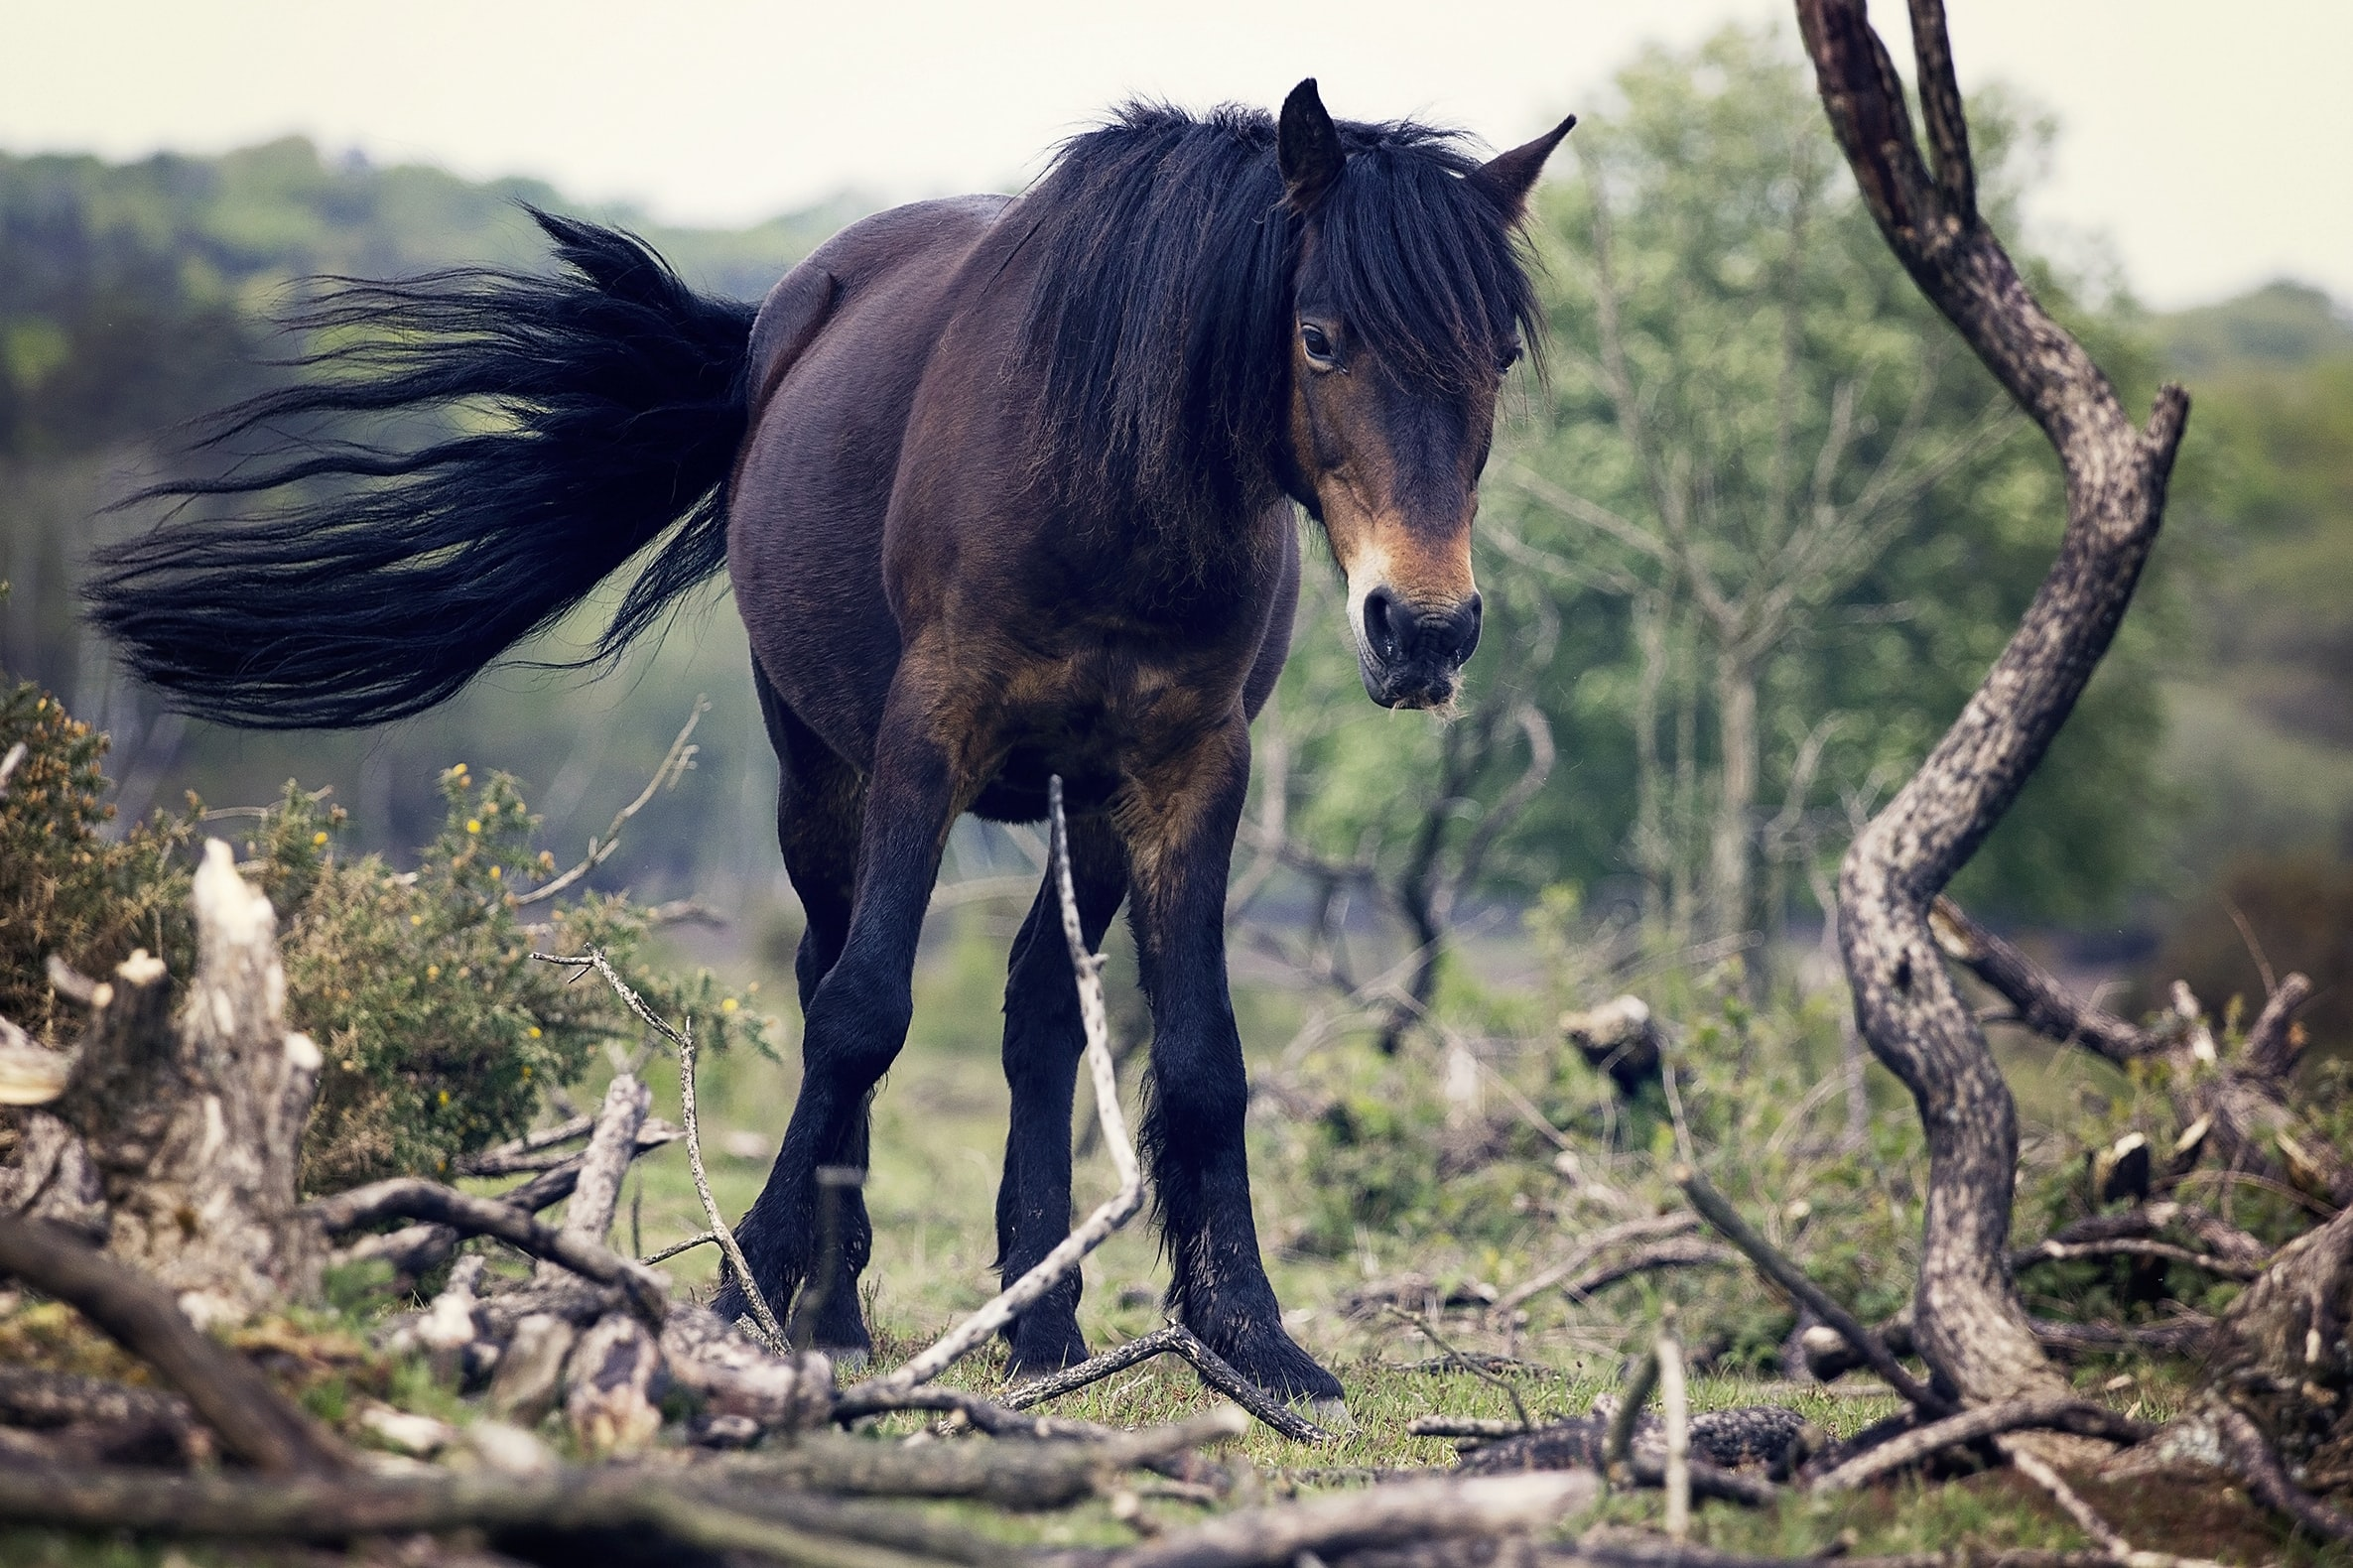 A dark horse with a long black tail treading on gnarly branches